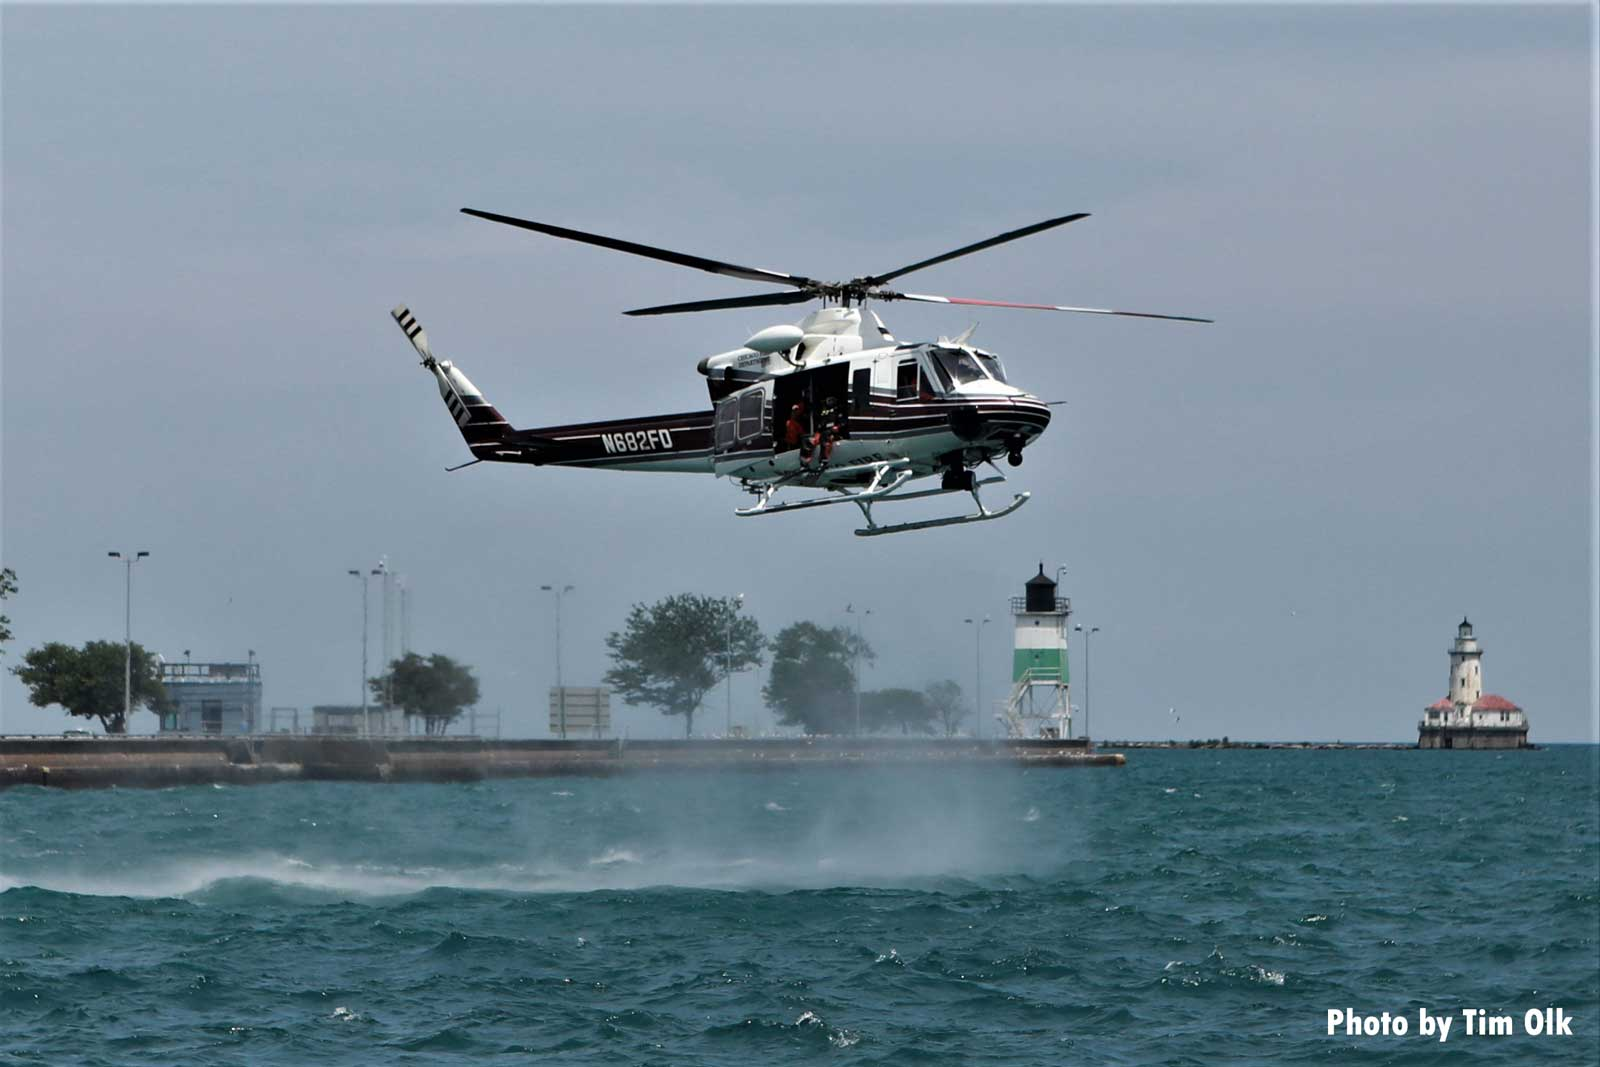 Chicago Fire Department helicopter over water